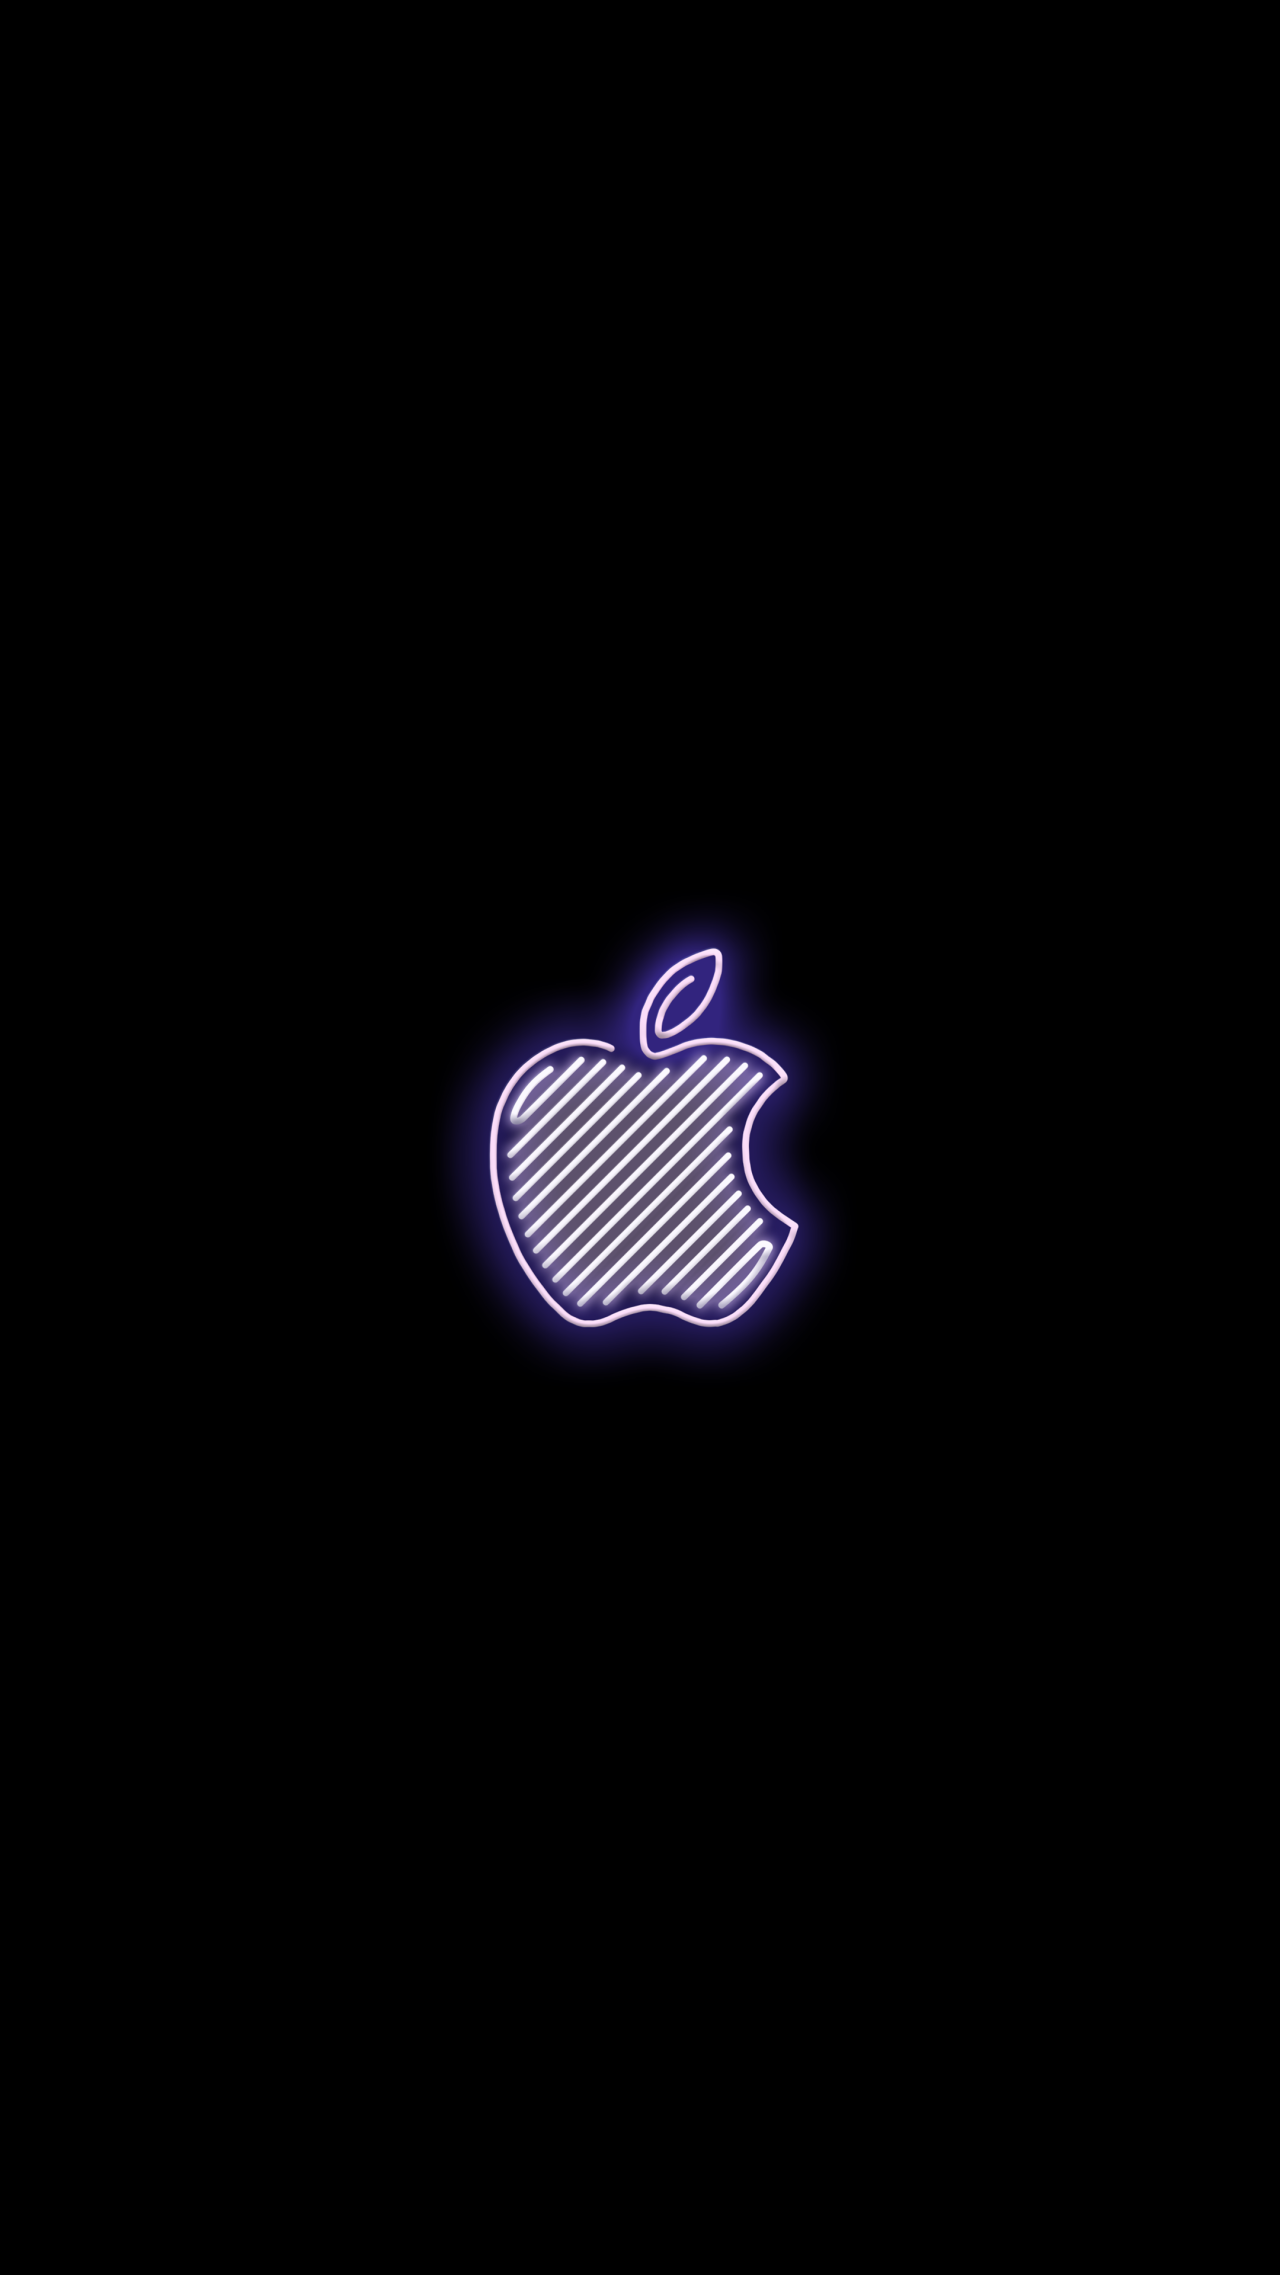 Apple S Neon Tokyo Wallpapers Apple Wallpaper Iphone Apple Logo